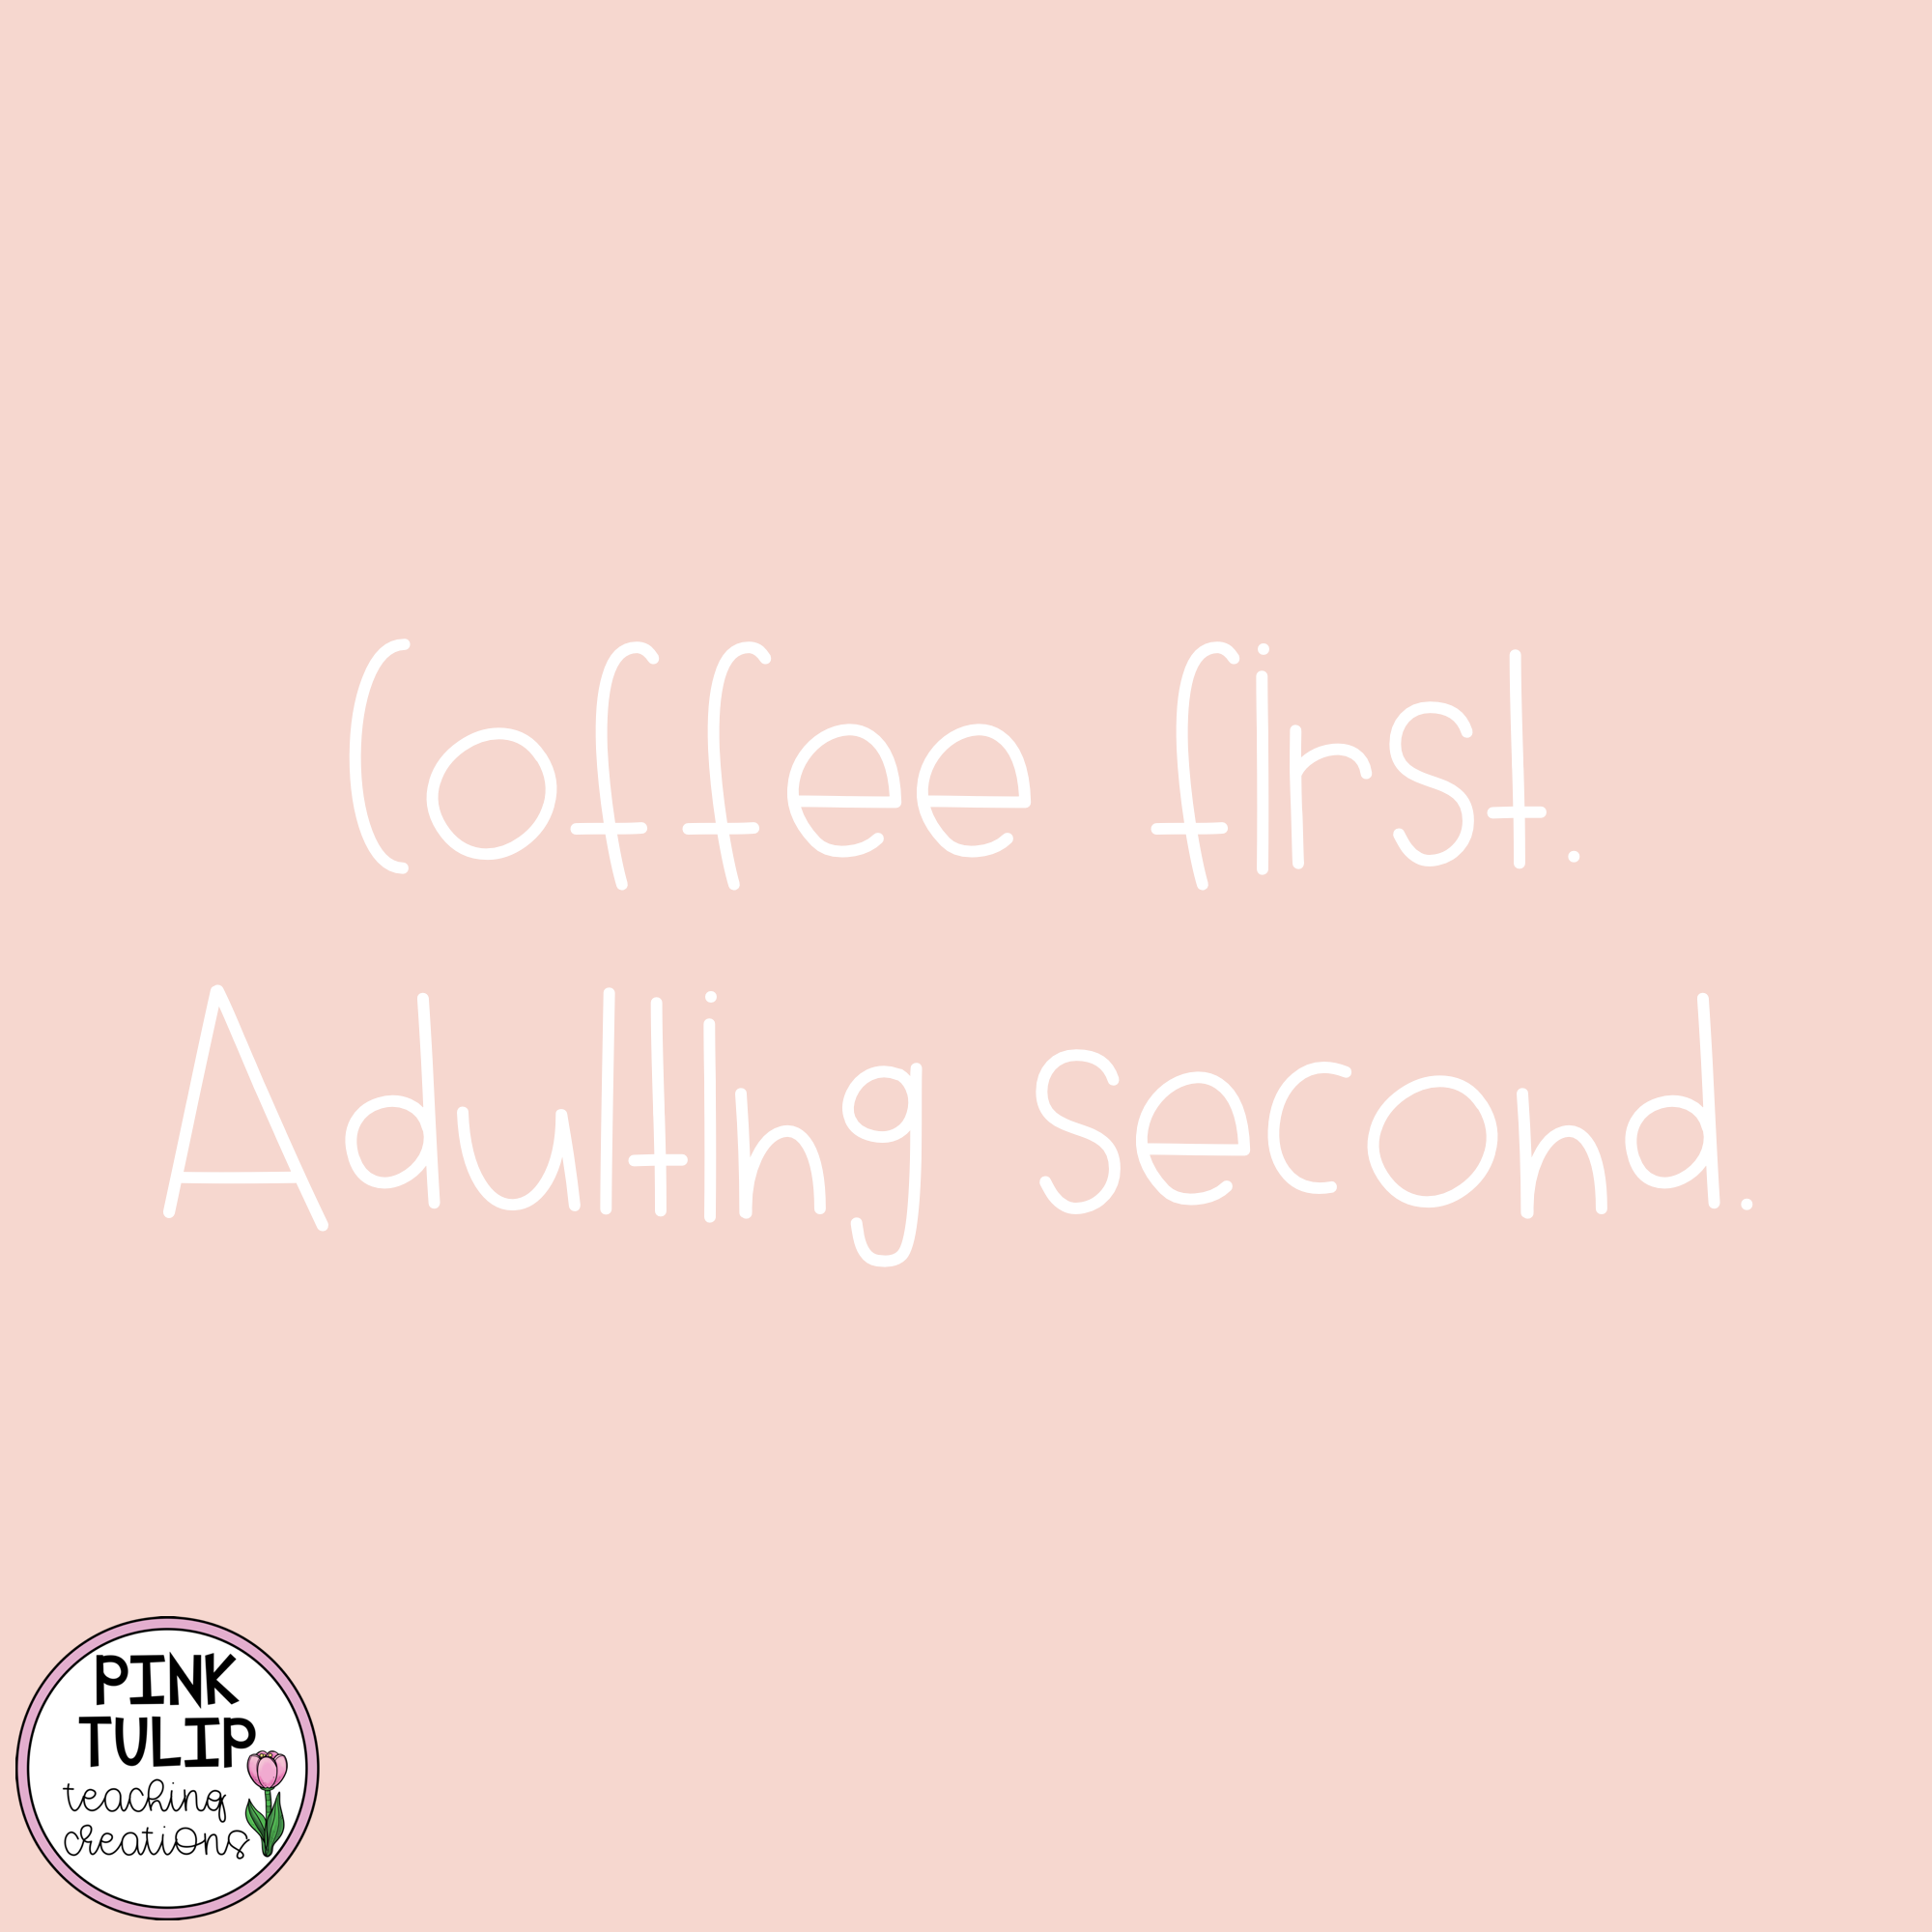 Coffee First Adulting Second Quote